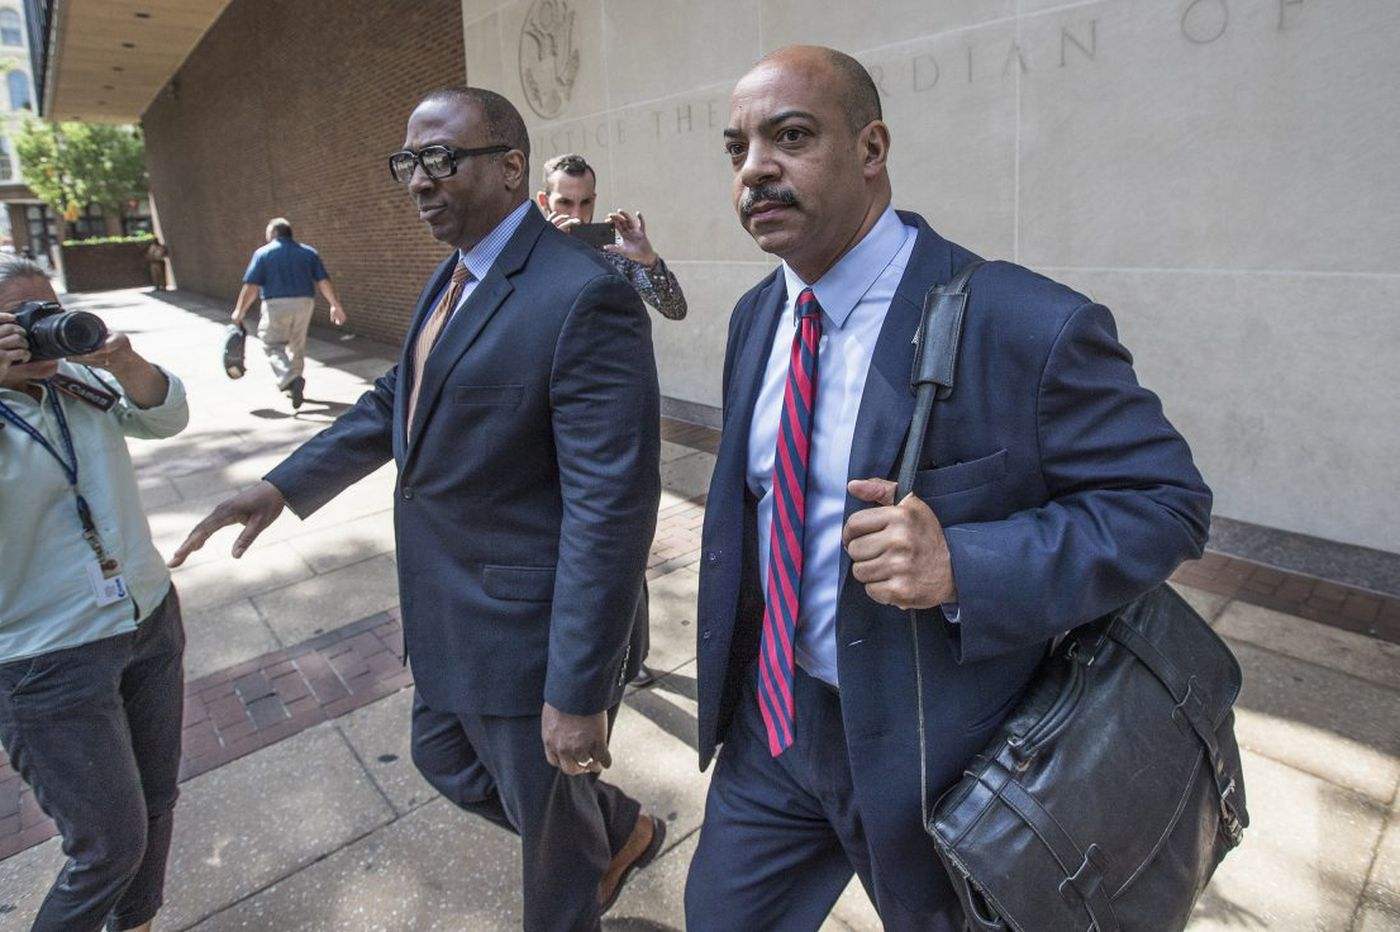 Asked if he bribed Philly DA Williams, owner of iconic gay bar answers with a shrug